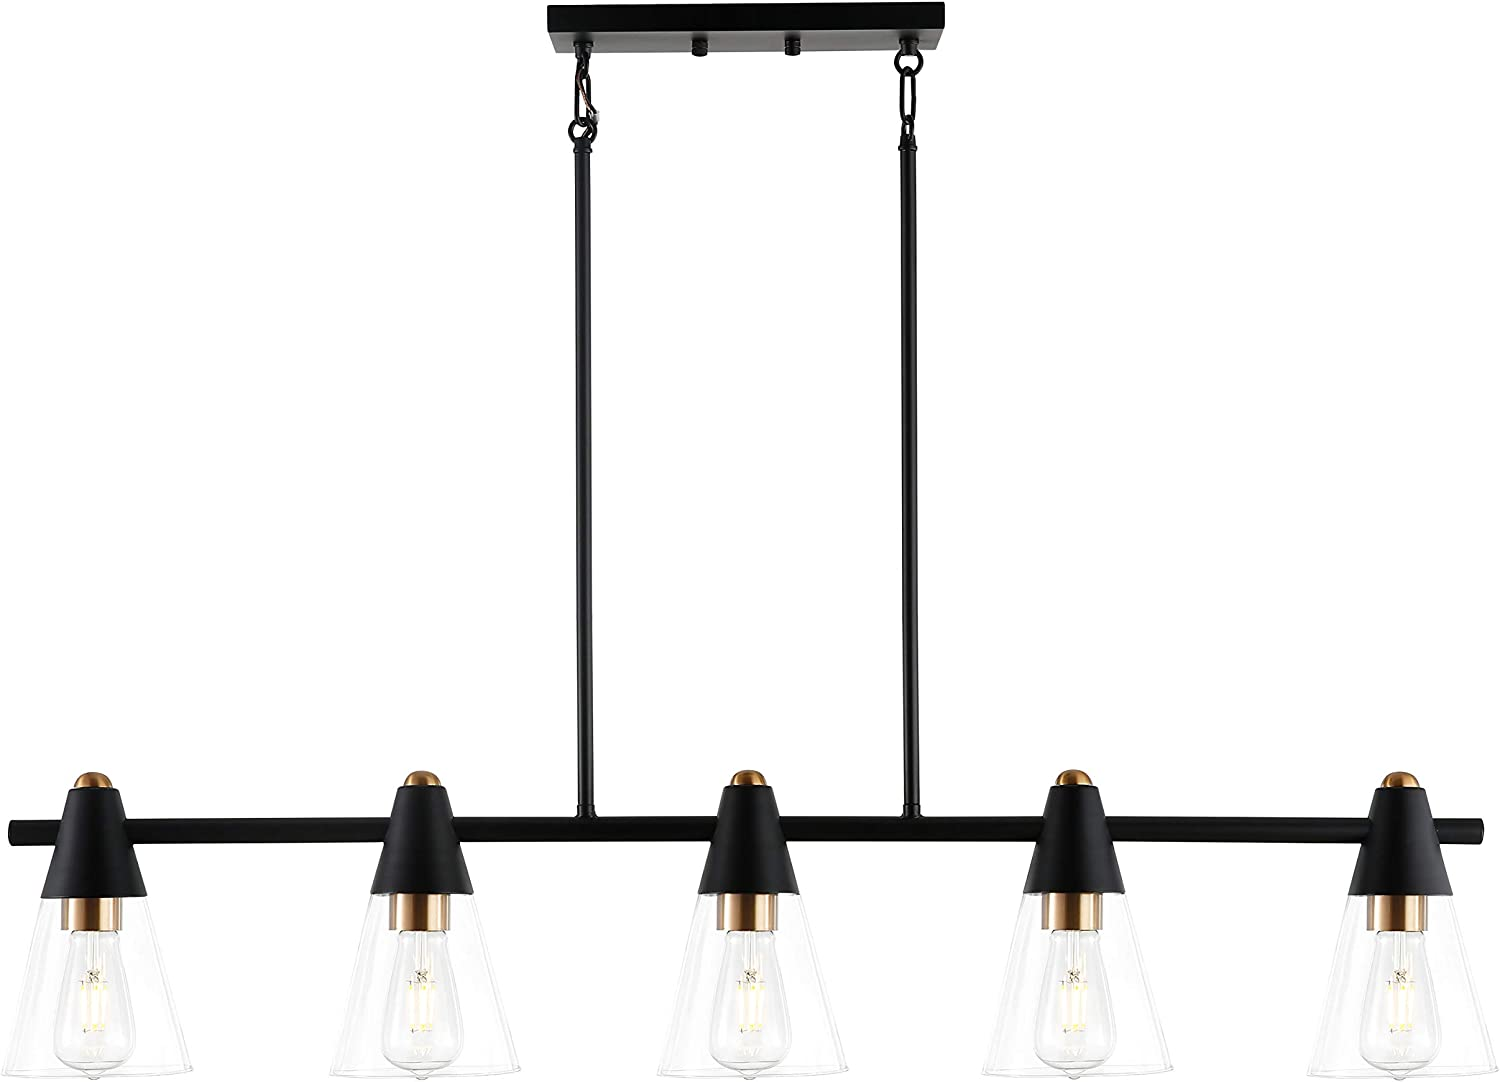 Contemporary Mid Century Modern Style Lighting Fixture Light Society Petra 5-Light Island Light Clear Glass with Black and Brass Finish